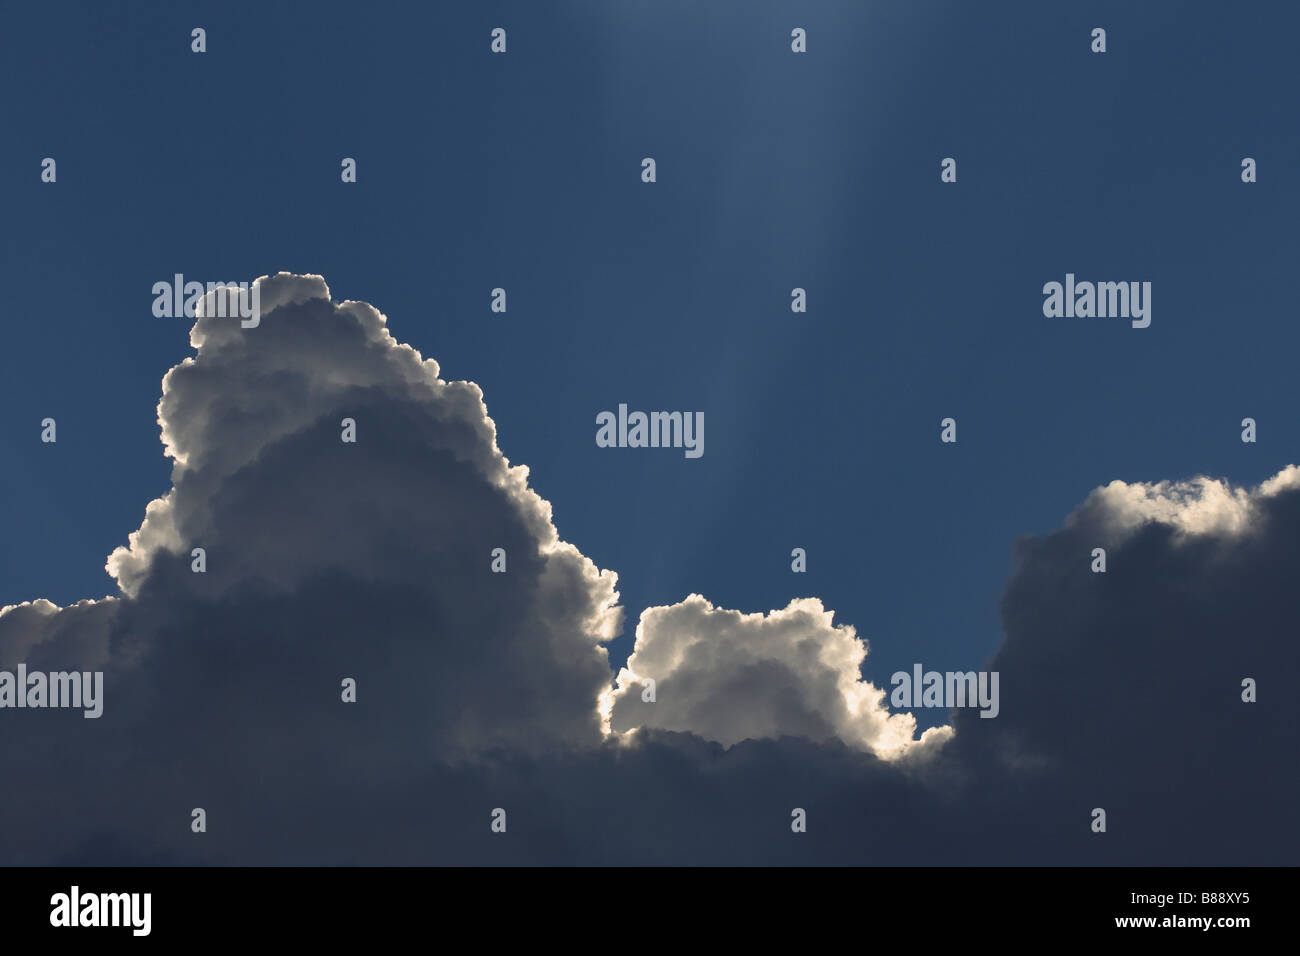 cumulonimbus cloud or storm clouds with light beams or streams above - Stock Image